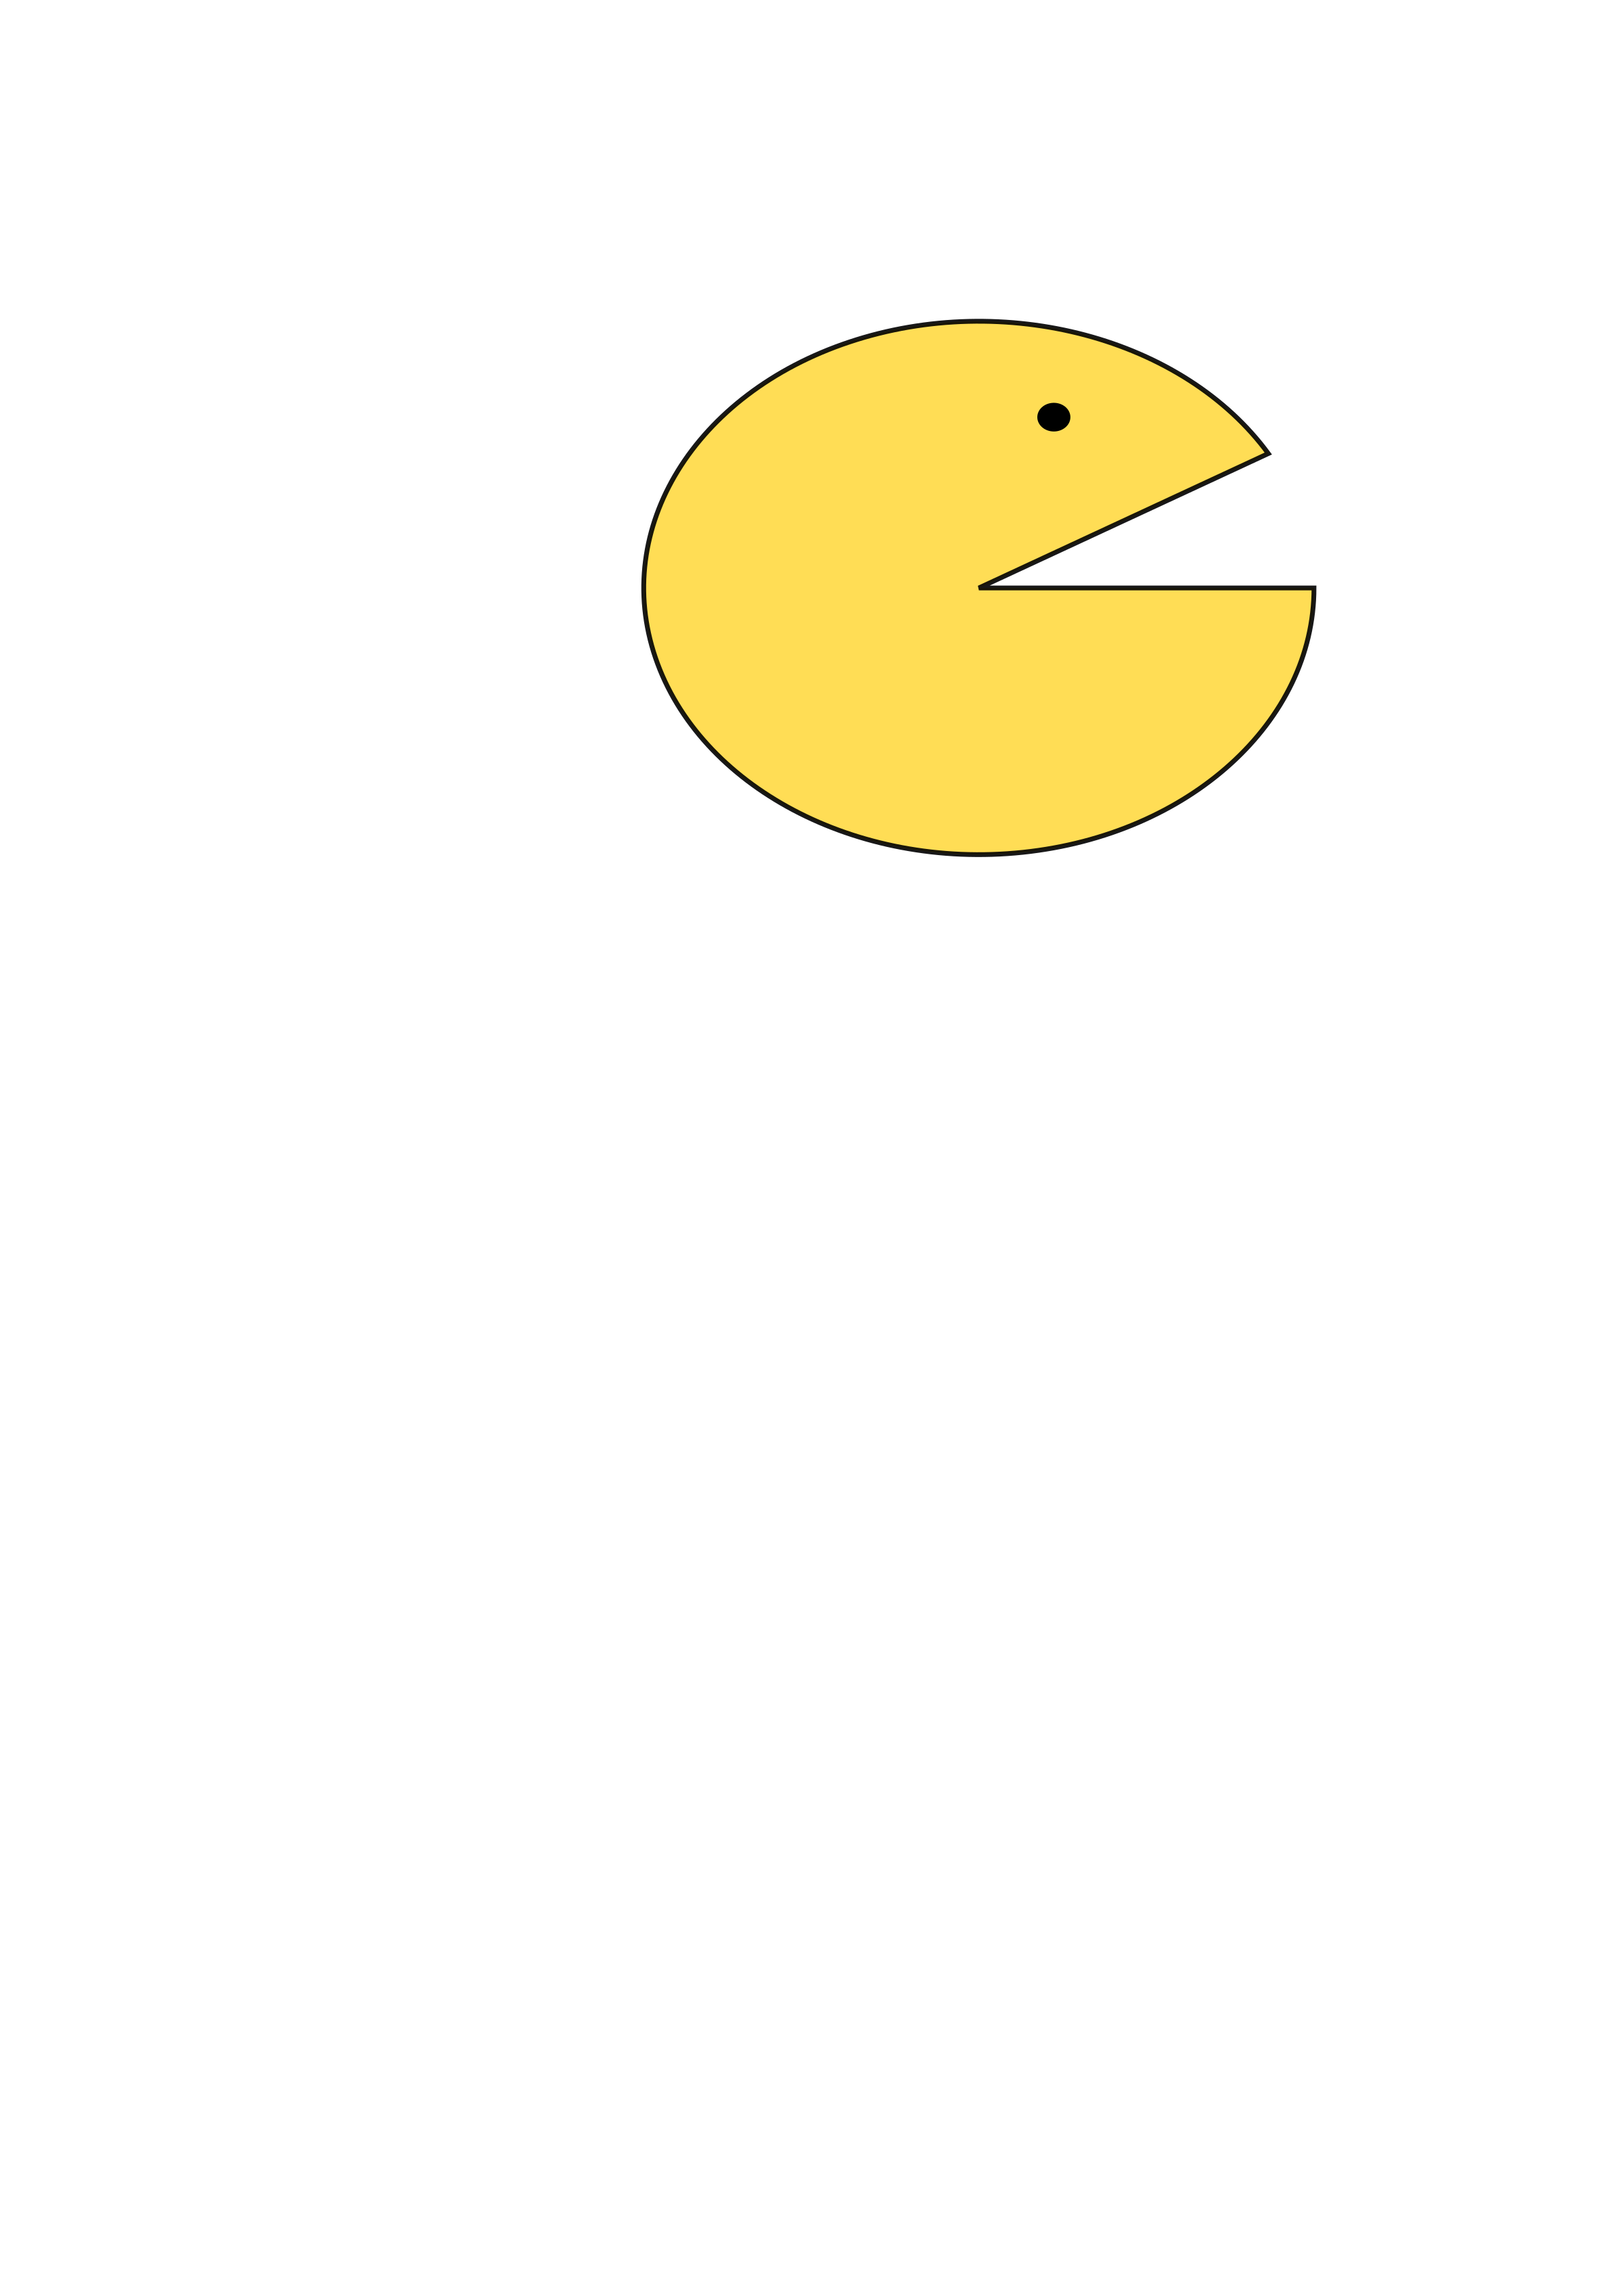 pac_man by junglebee